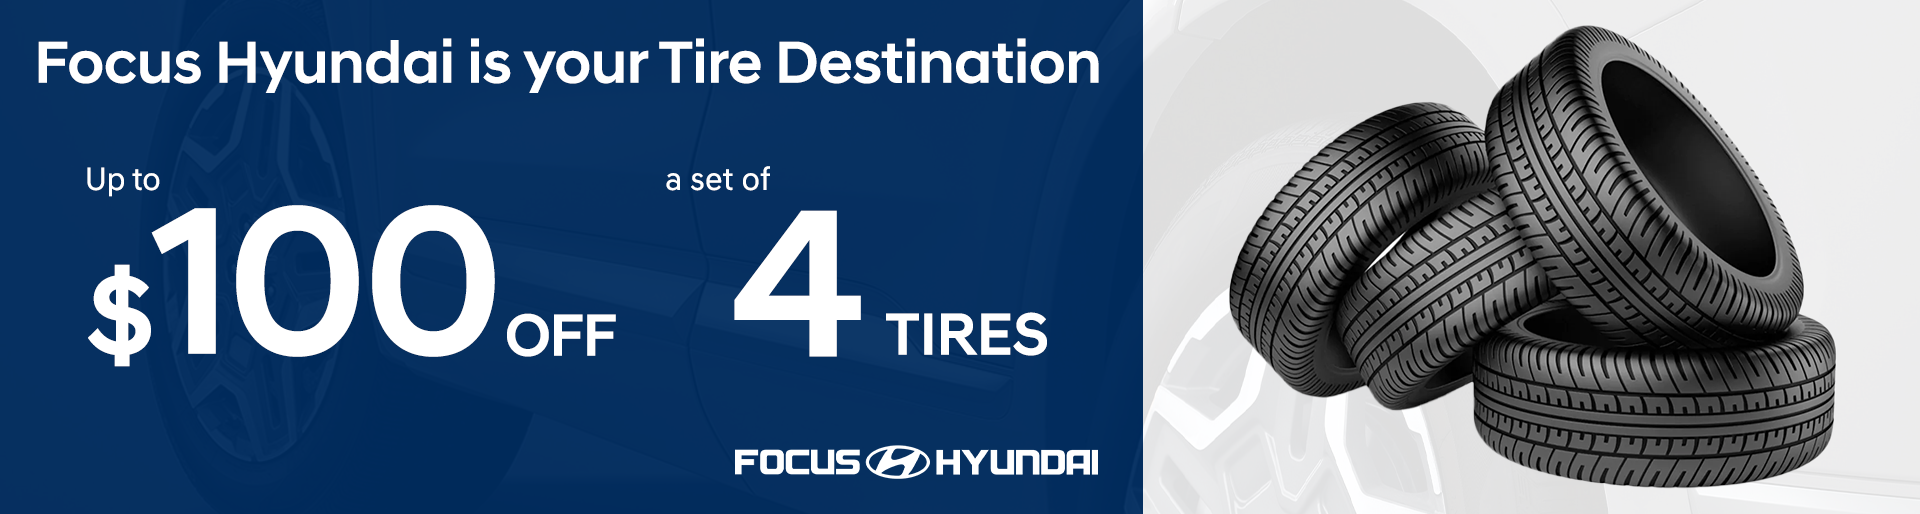 Tire Destination 100 off